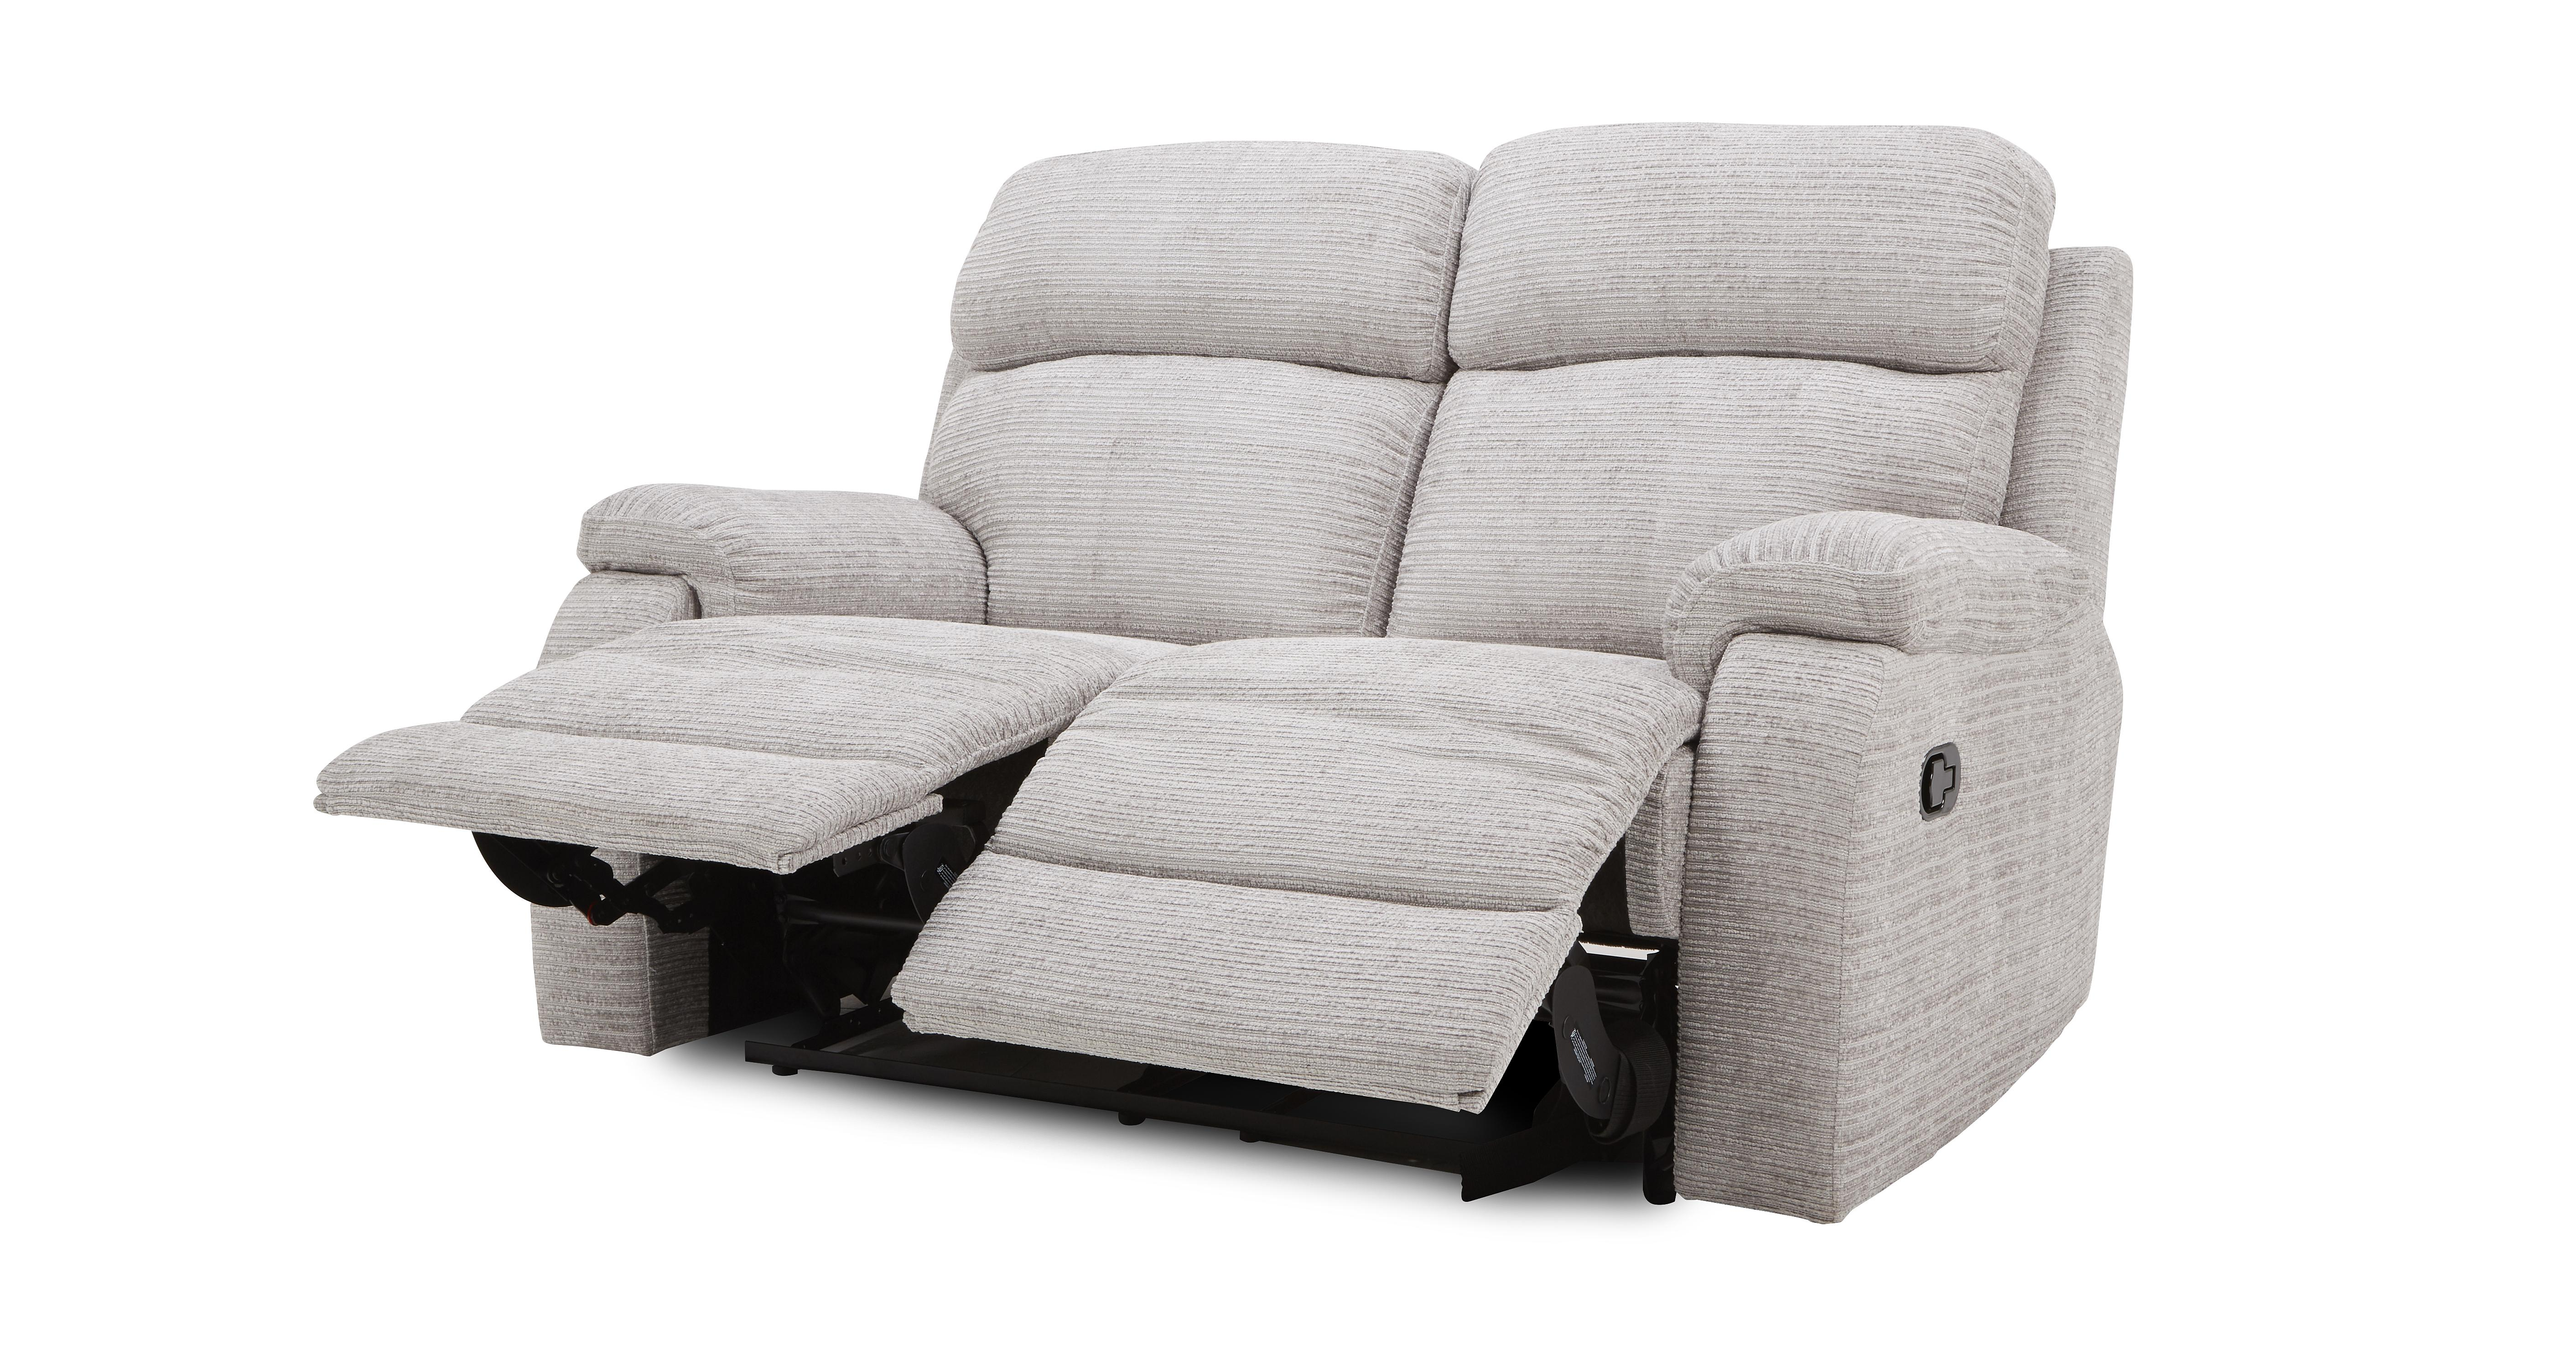 2 Seater Recliner Lounge Newbury 2 Seater Manual Recliner Prestige Dfs